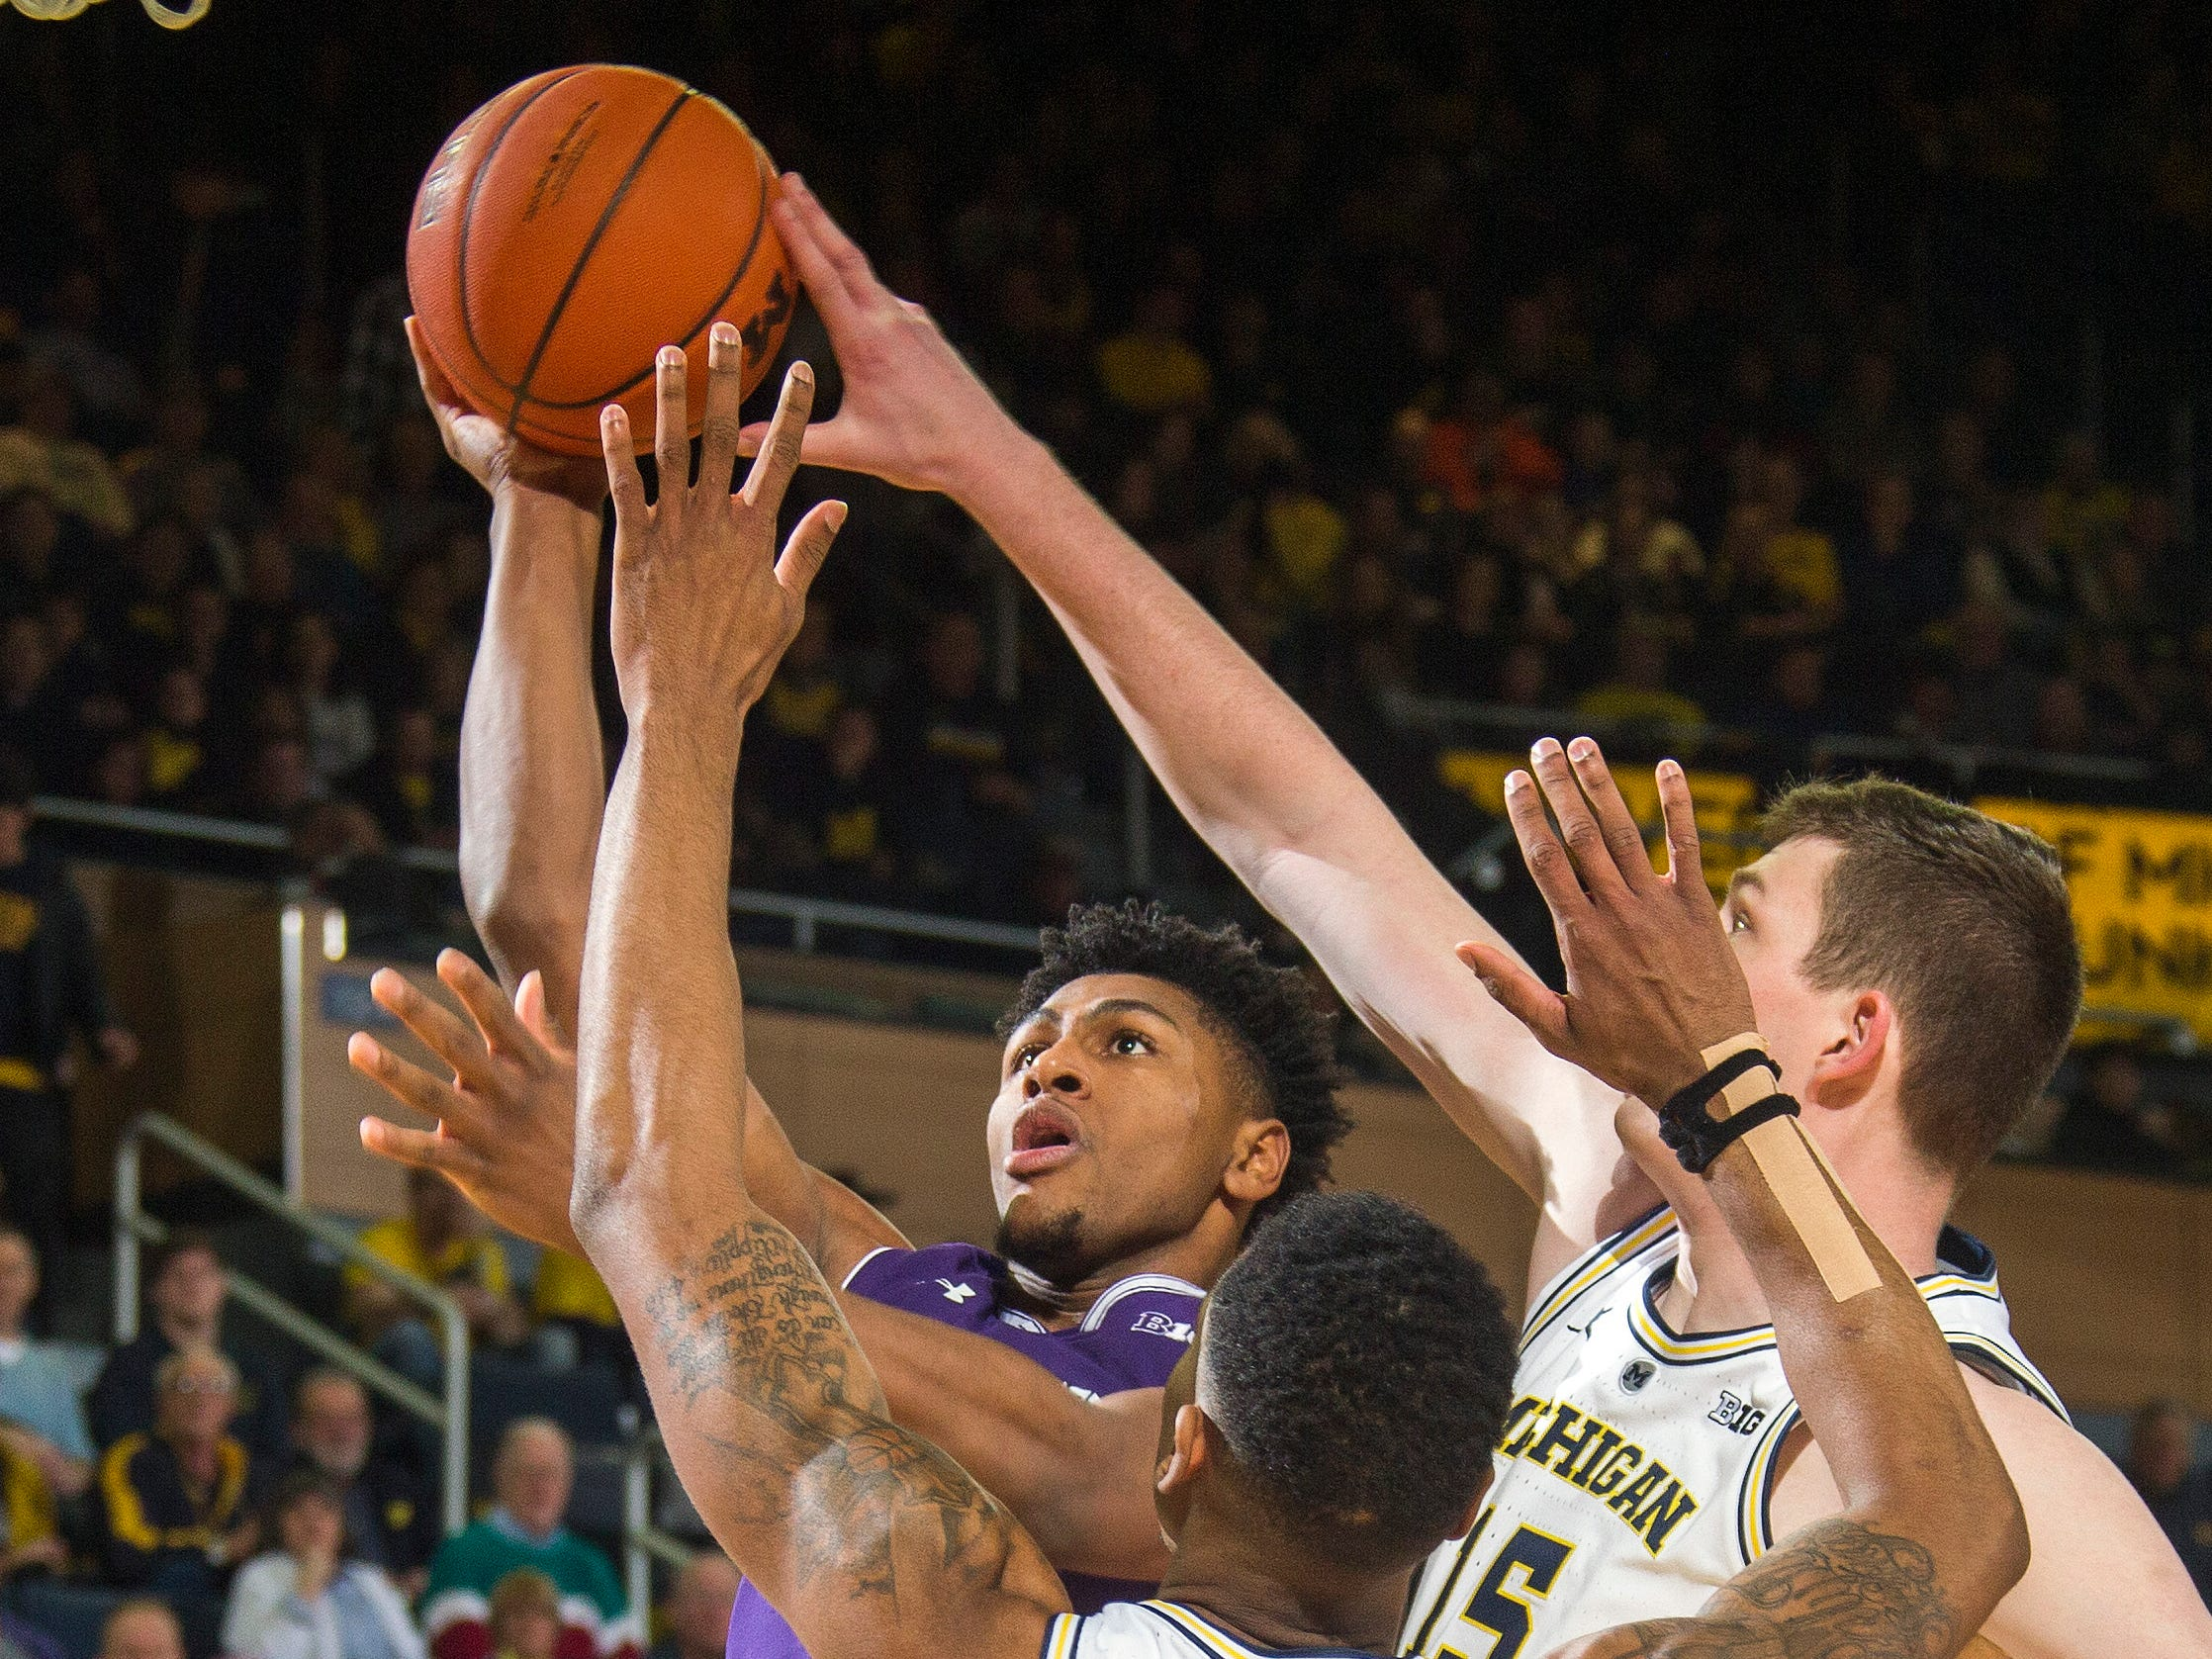 Northwestern guard Anthony Gaines, top left, goes to the basket while defended by Michigan guard Charles Matthews (1) and center Jon Teske, right, in the first half.